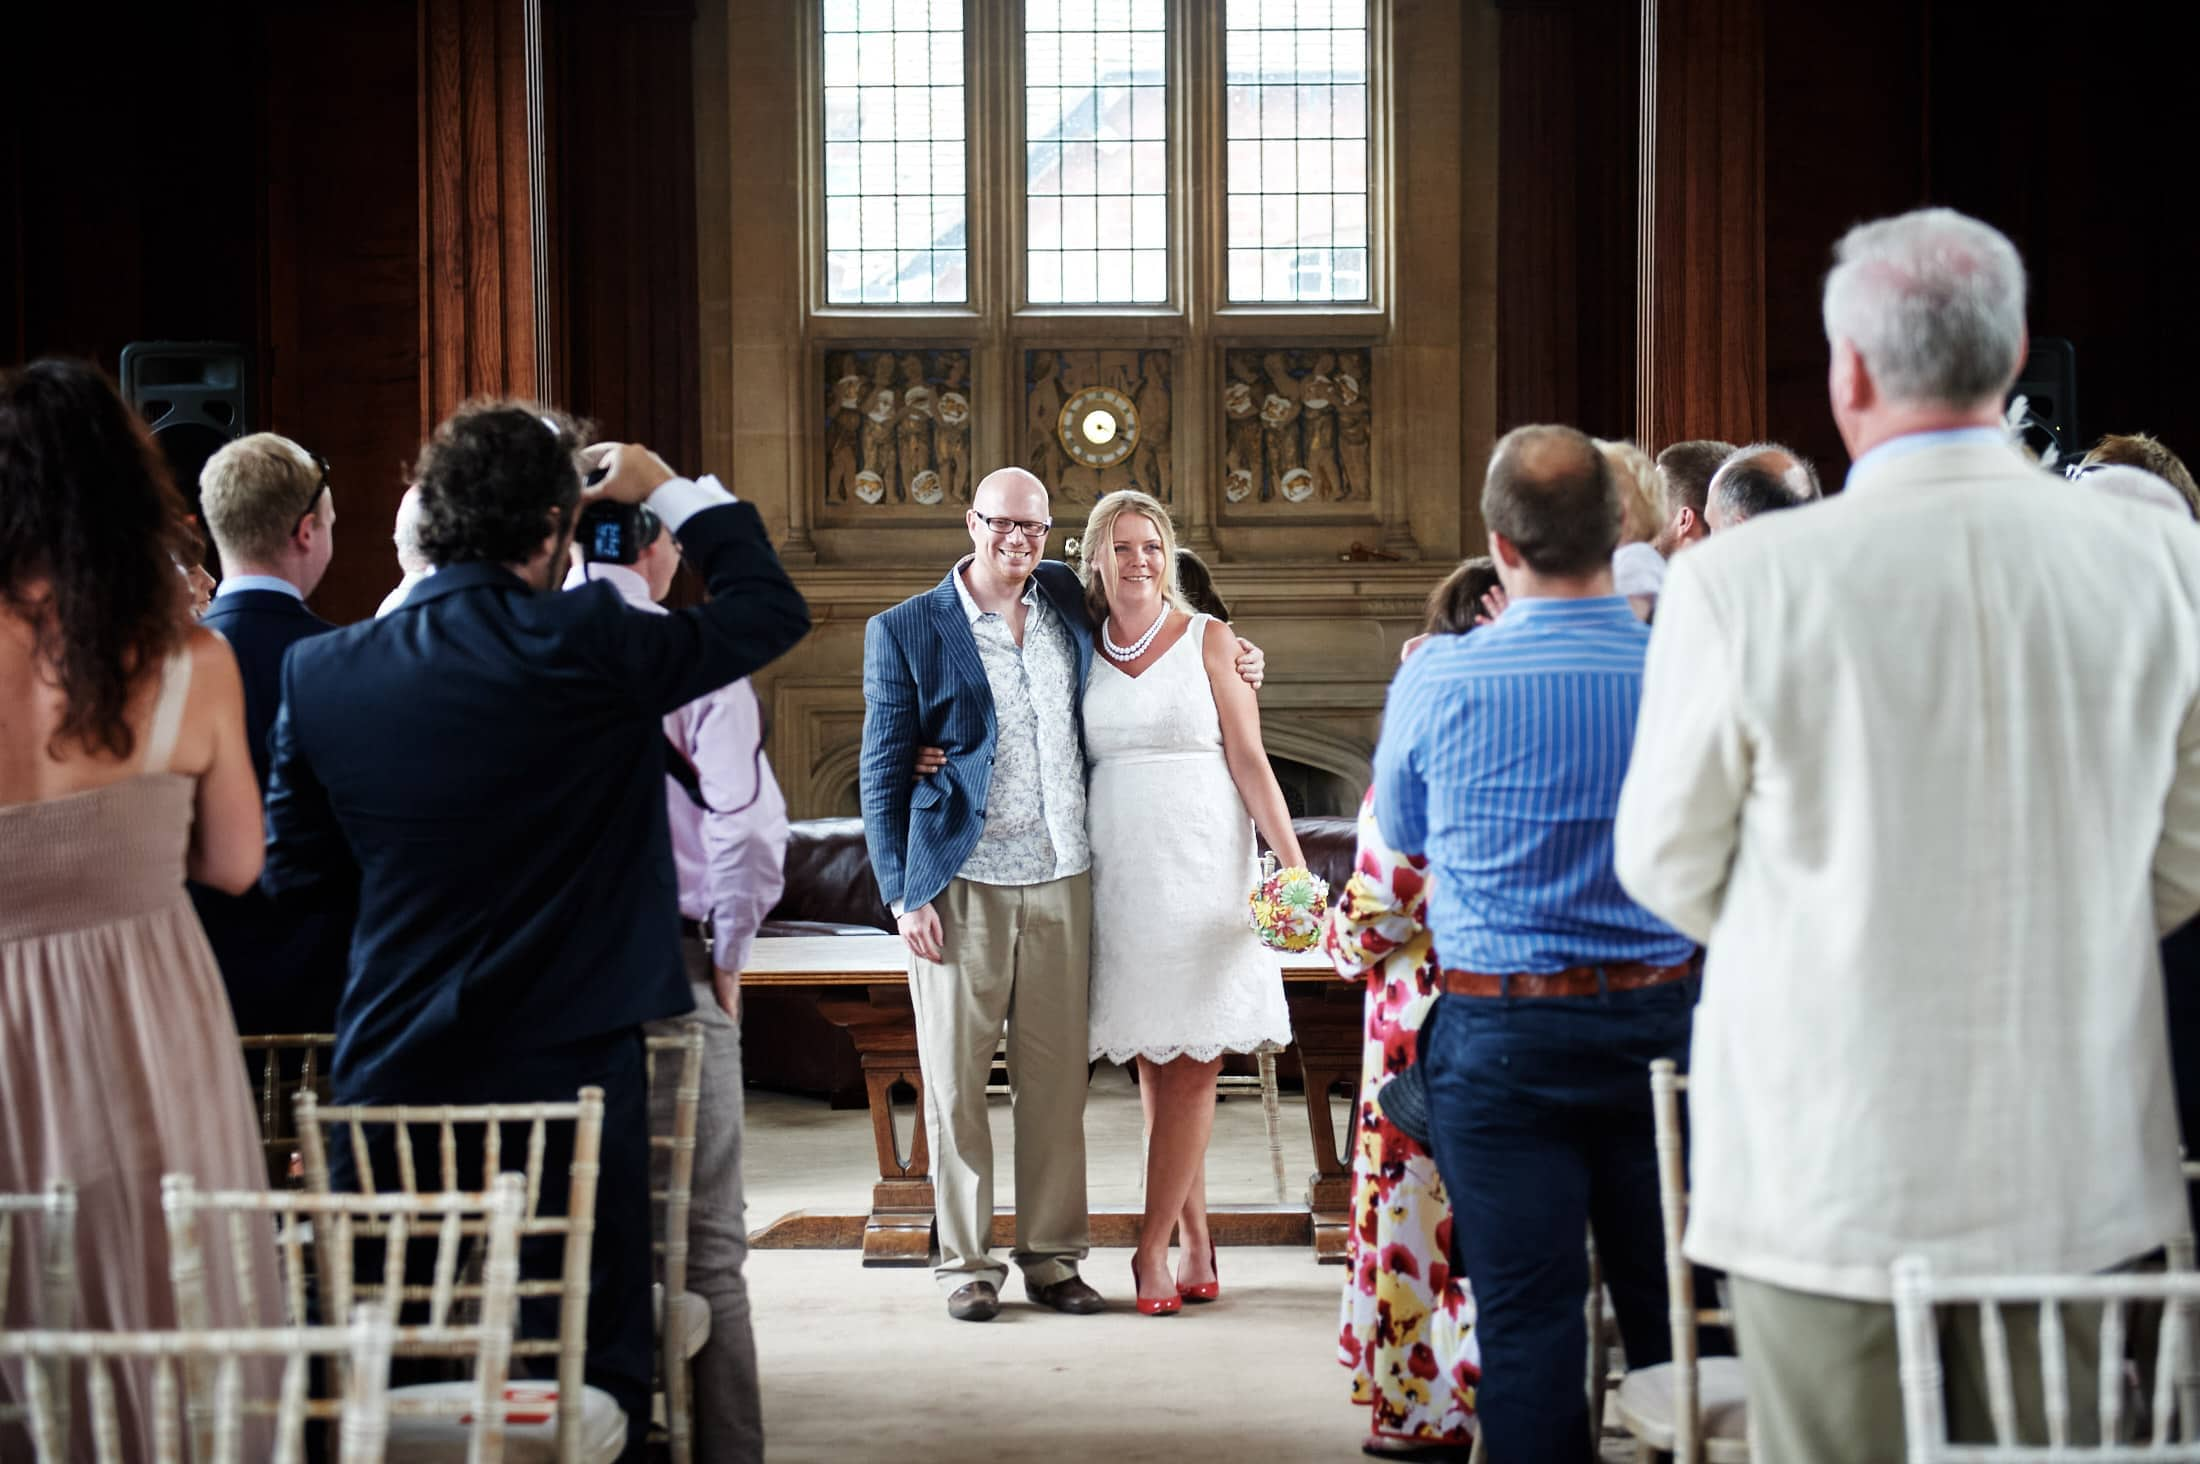 Bride and groom pose as guests take photos during wedding ceremony in Memorial Library at Malvern College